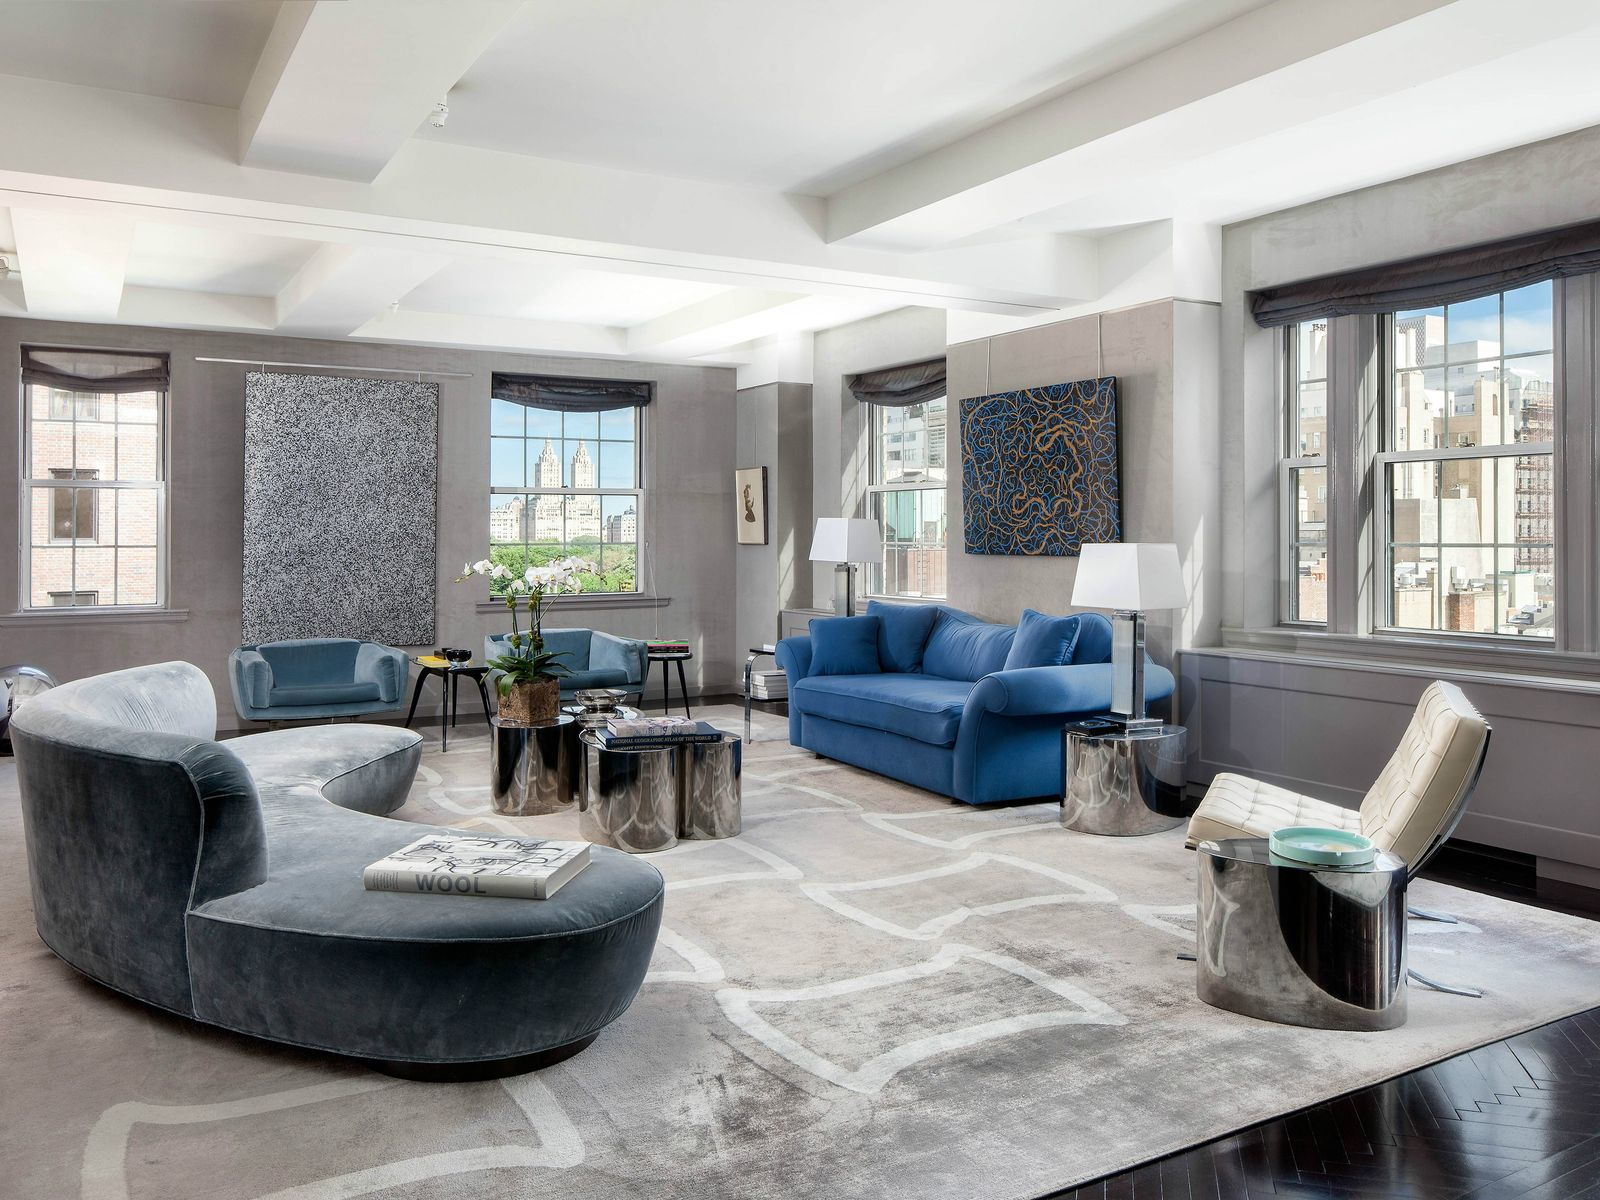 28 East 70th Street, New York NY Condominium - New York City Real Estate